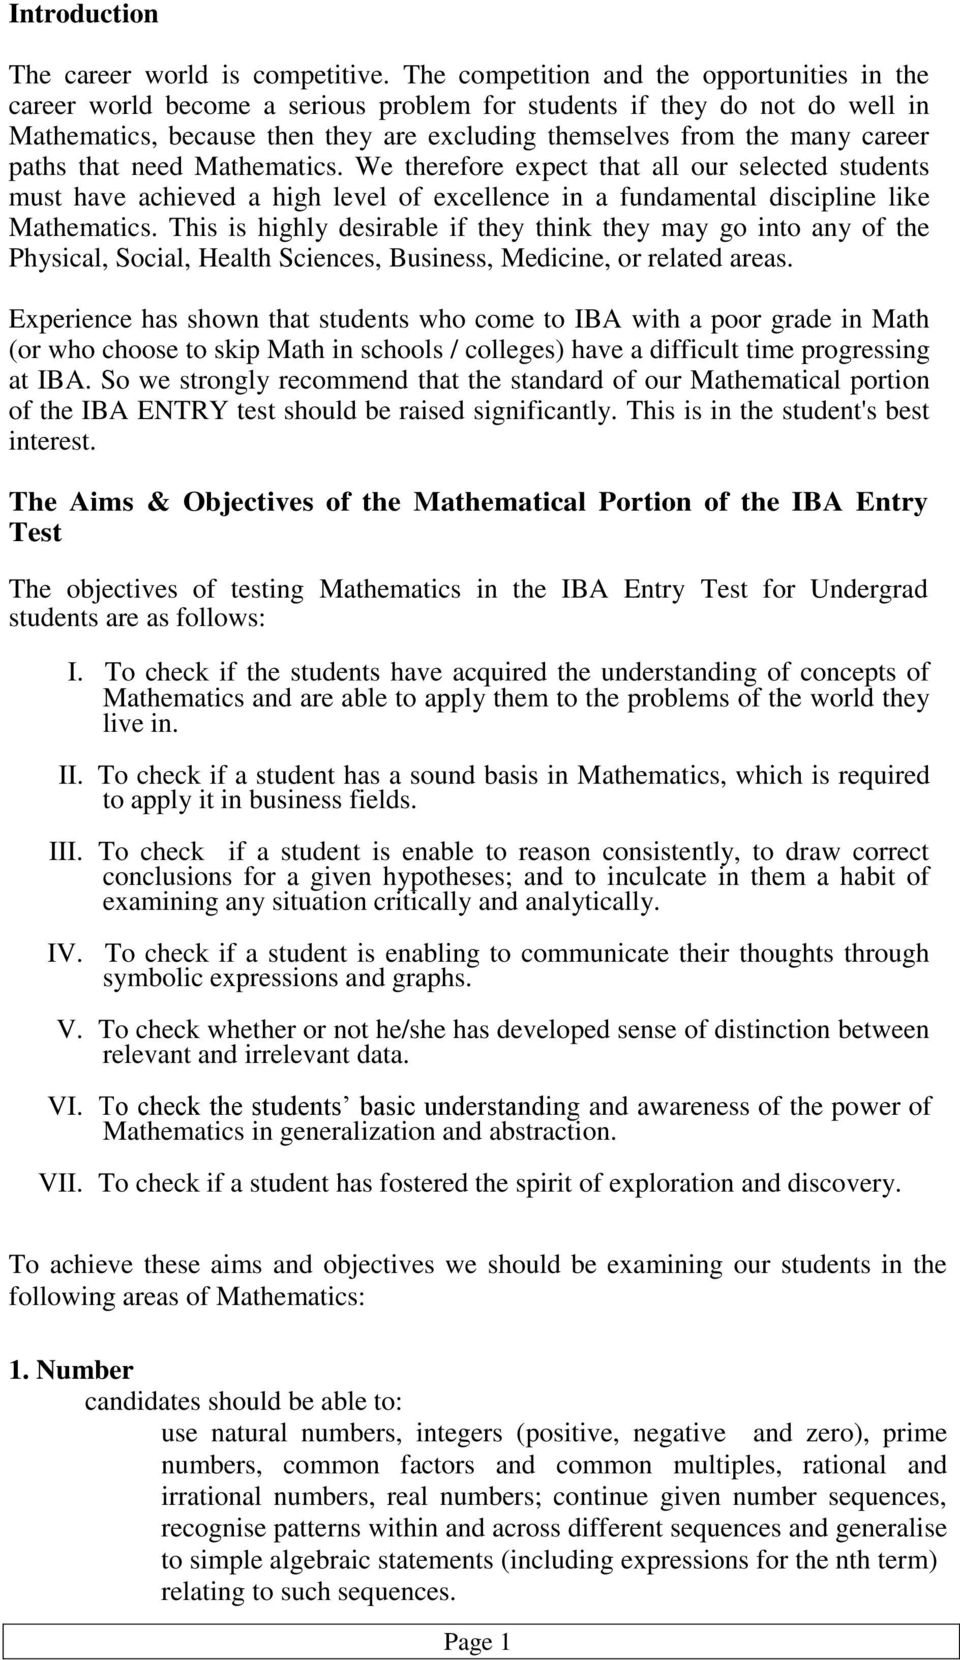 paths that need Mathematics. We therefore expect that all our selected students must have achieved a high level of excellence in a fundamental discipline like Mathematics.